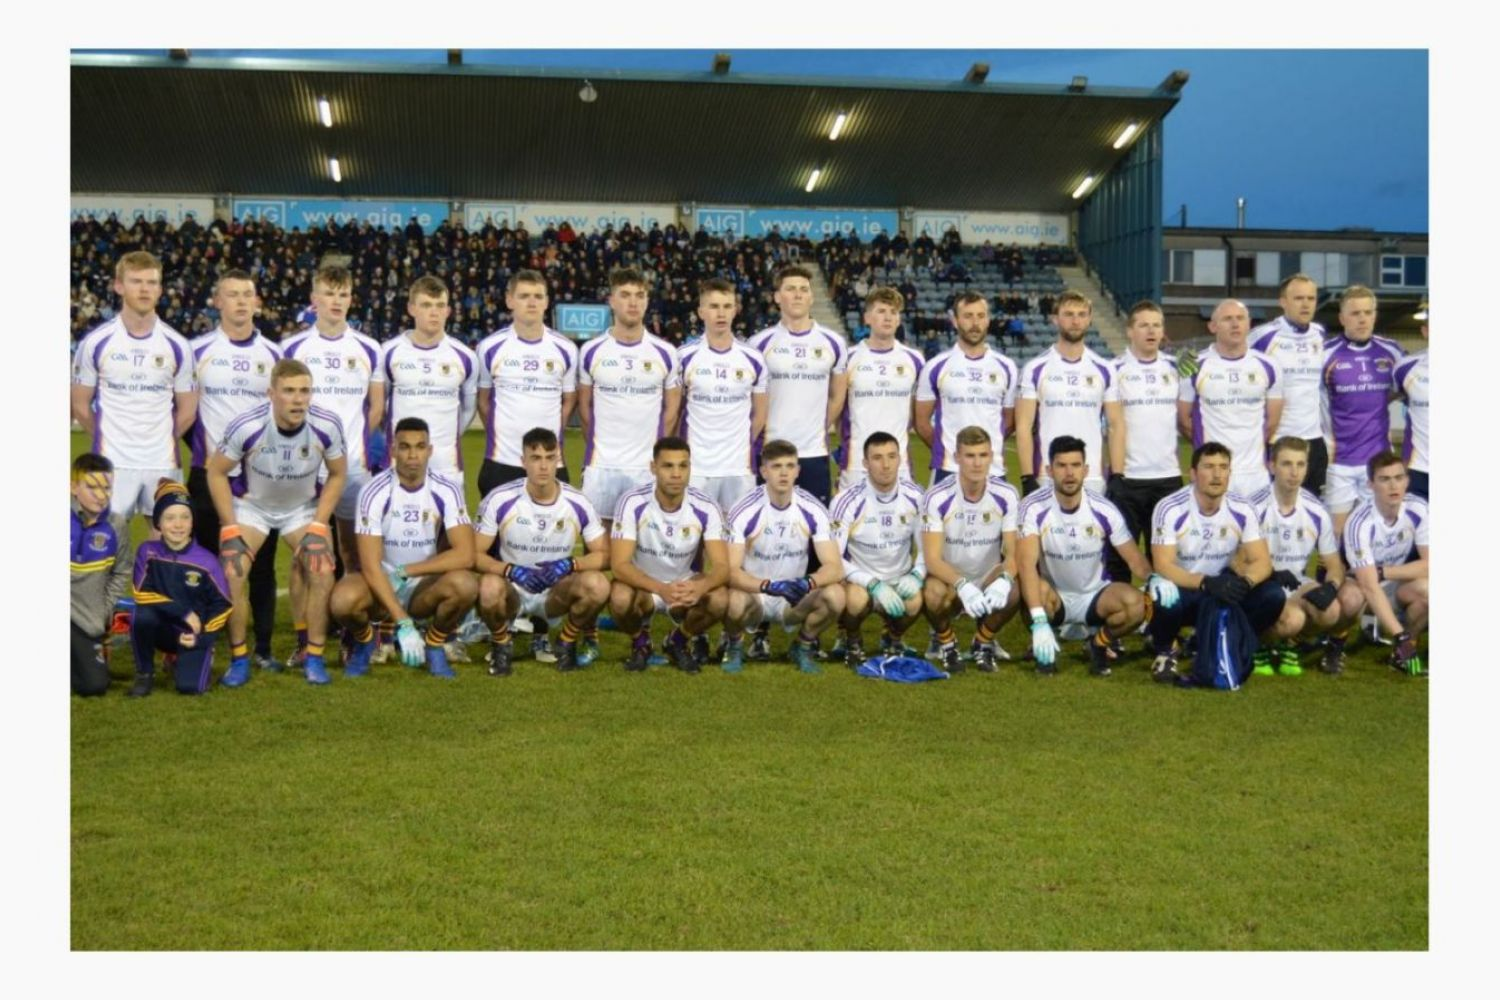 Senior Football - County Quarter Final - Sunday 13th October